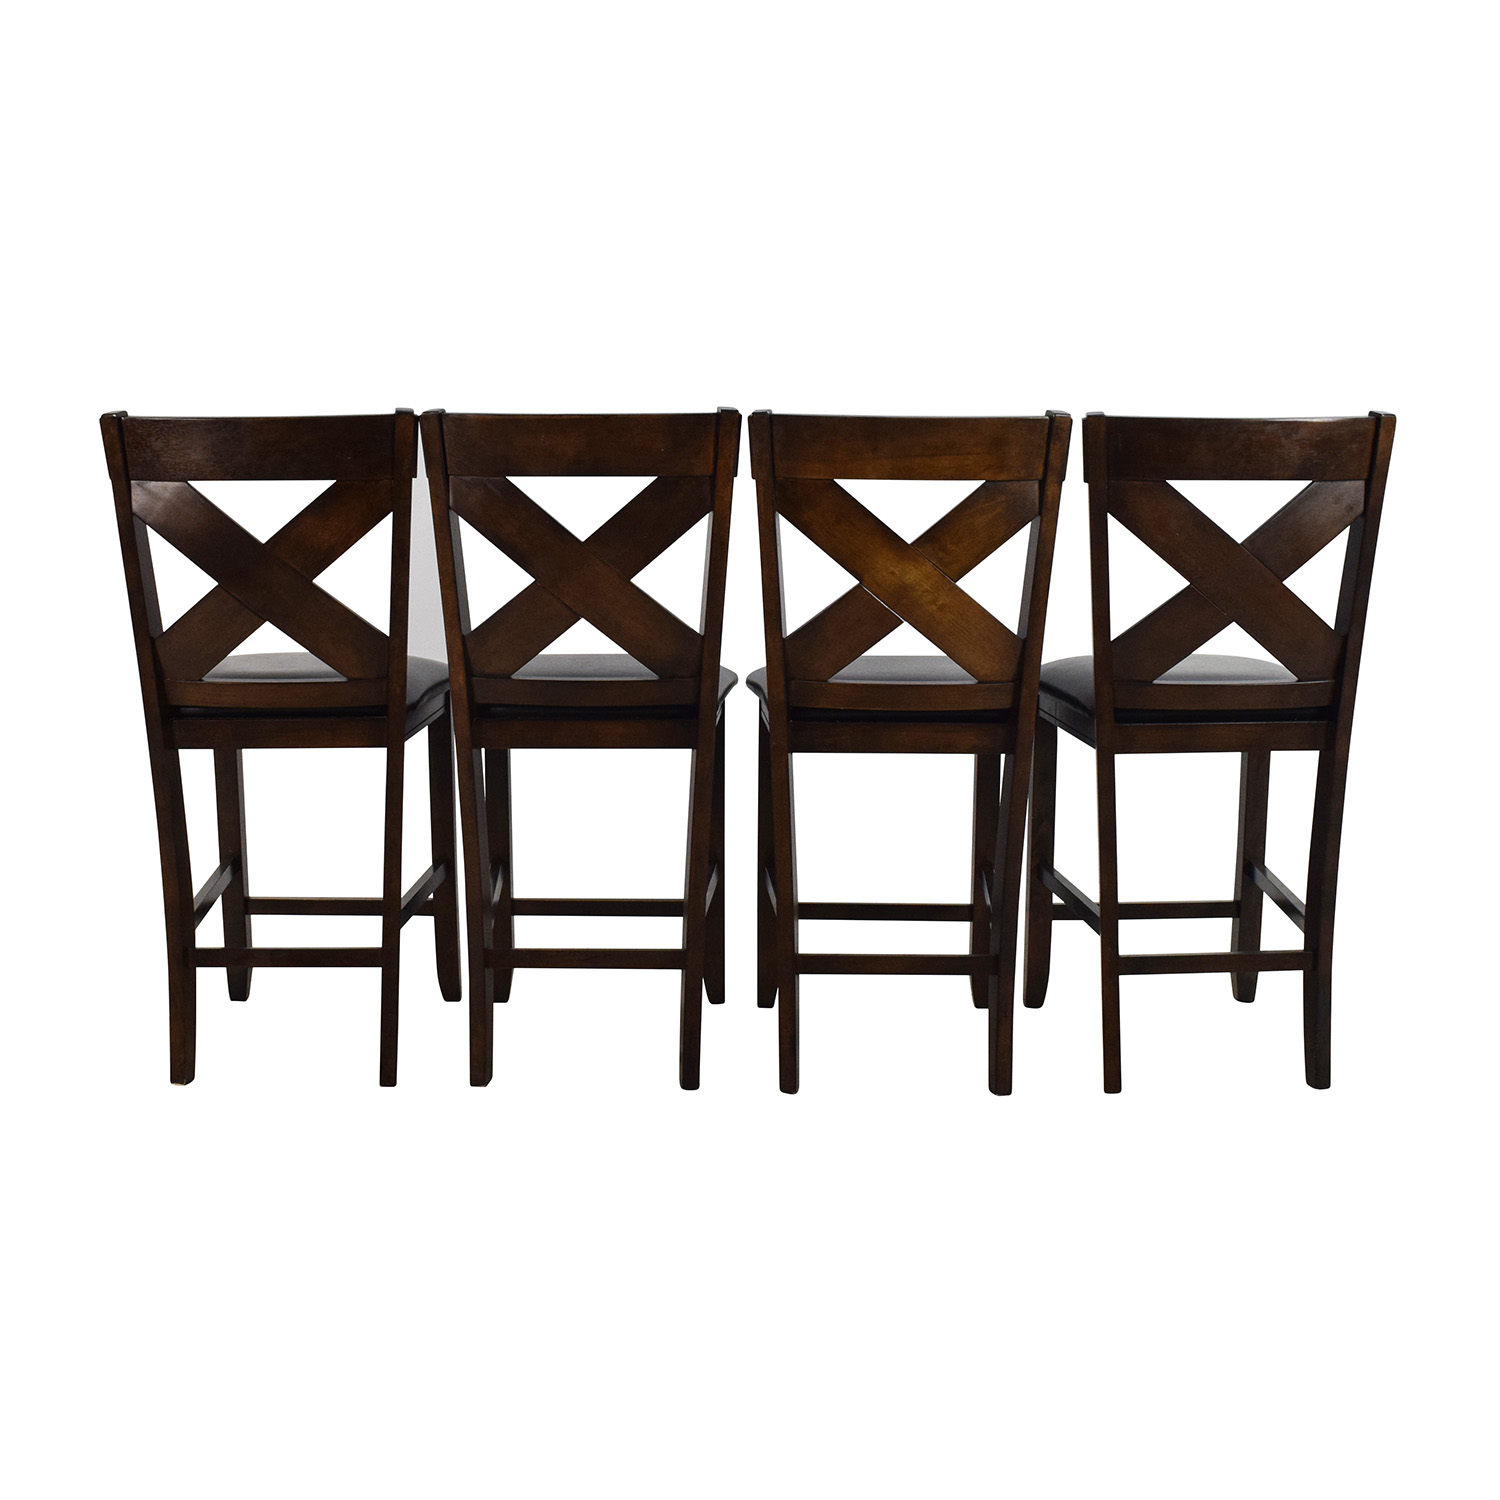 65 Off Bob 39 S Furniture Bob 39 S Furniture X Factor Bar Stool Set Chairs